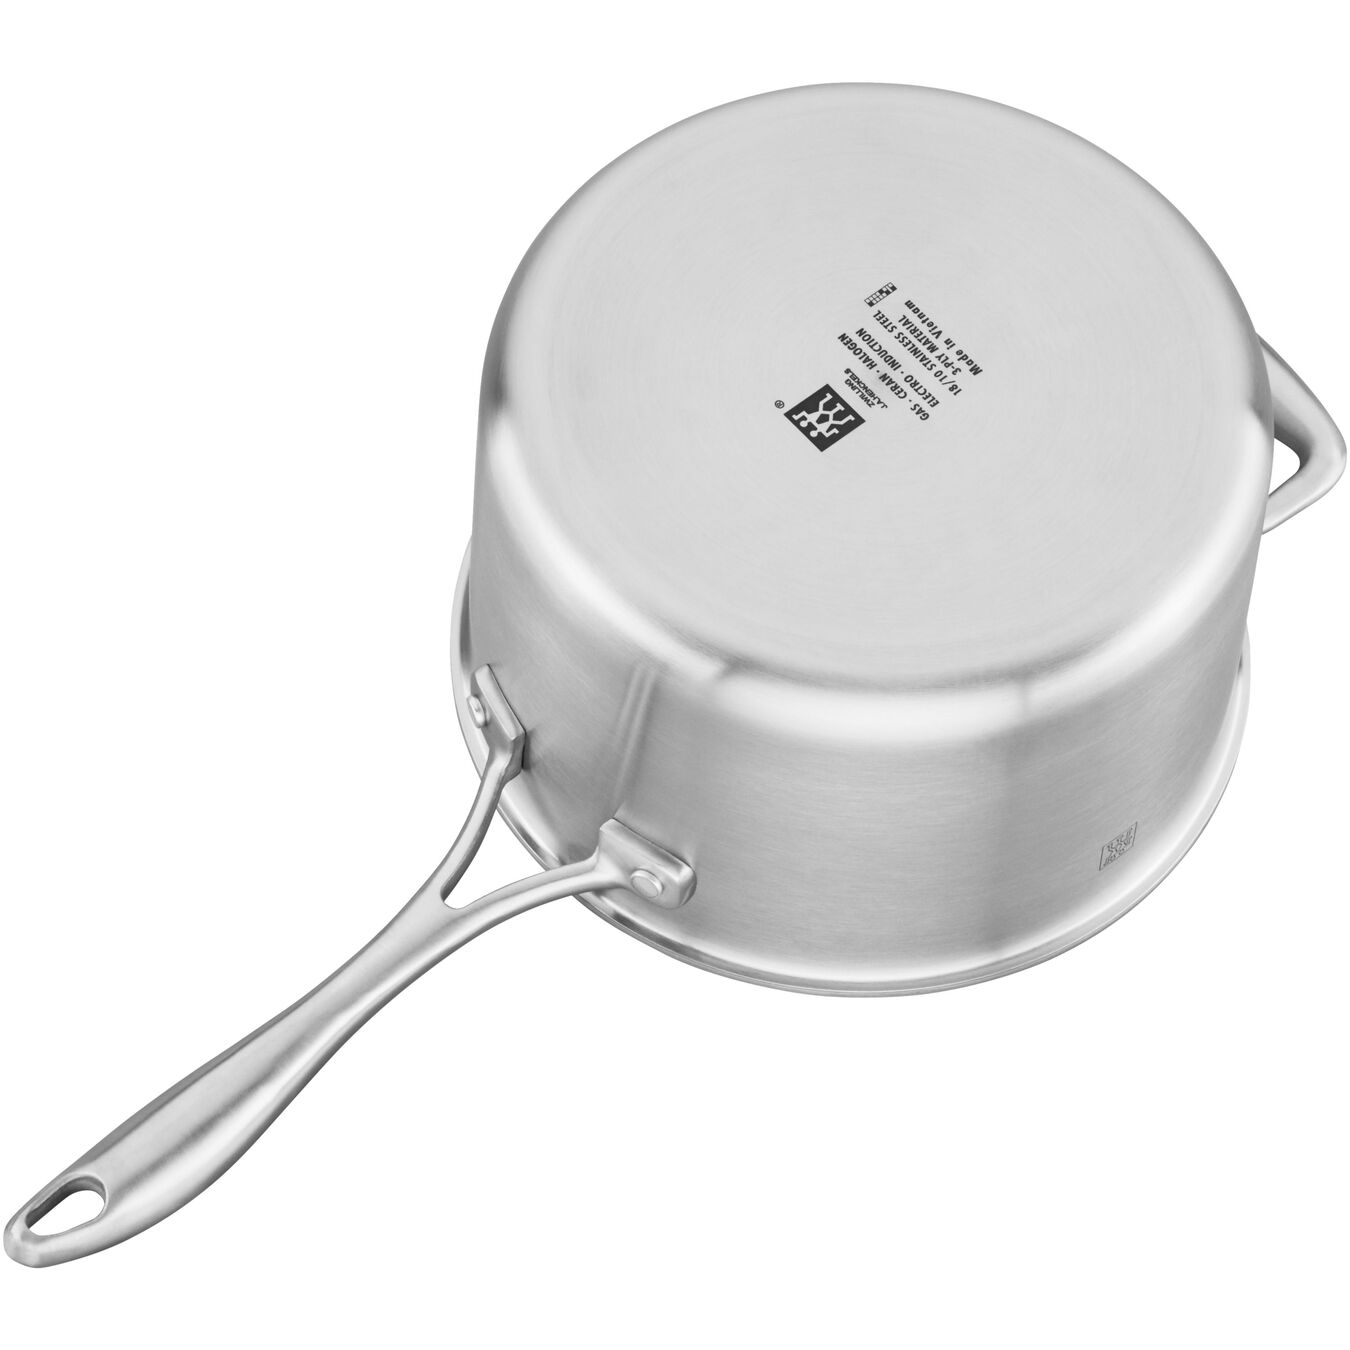 4 qt Sauce pan, 18/10 Stainless Steel ,,large 1